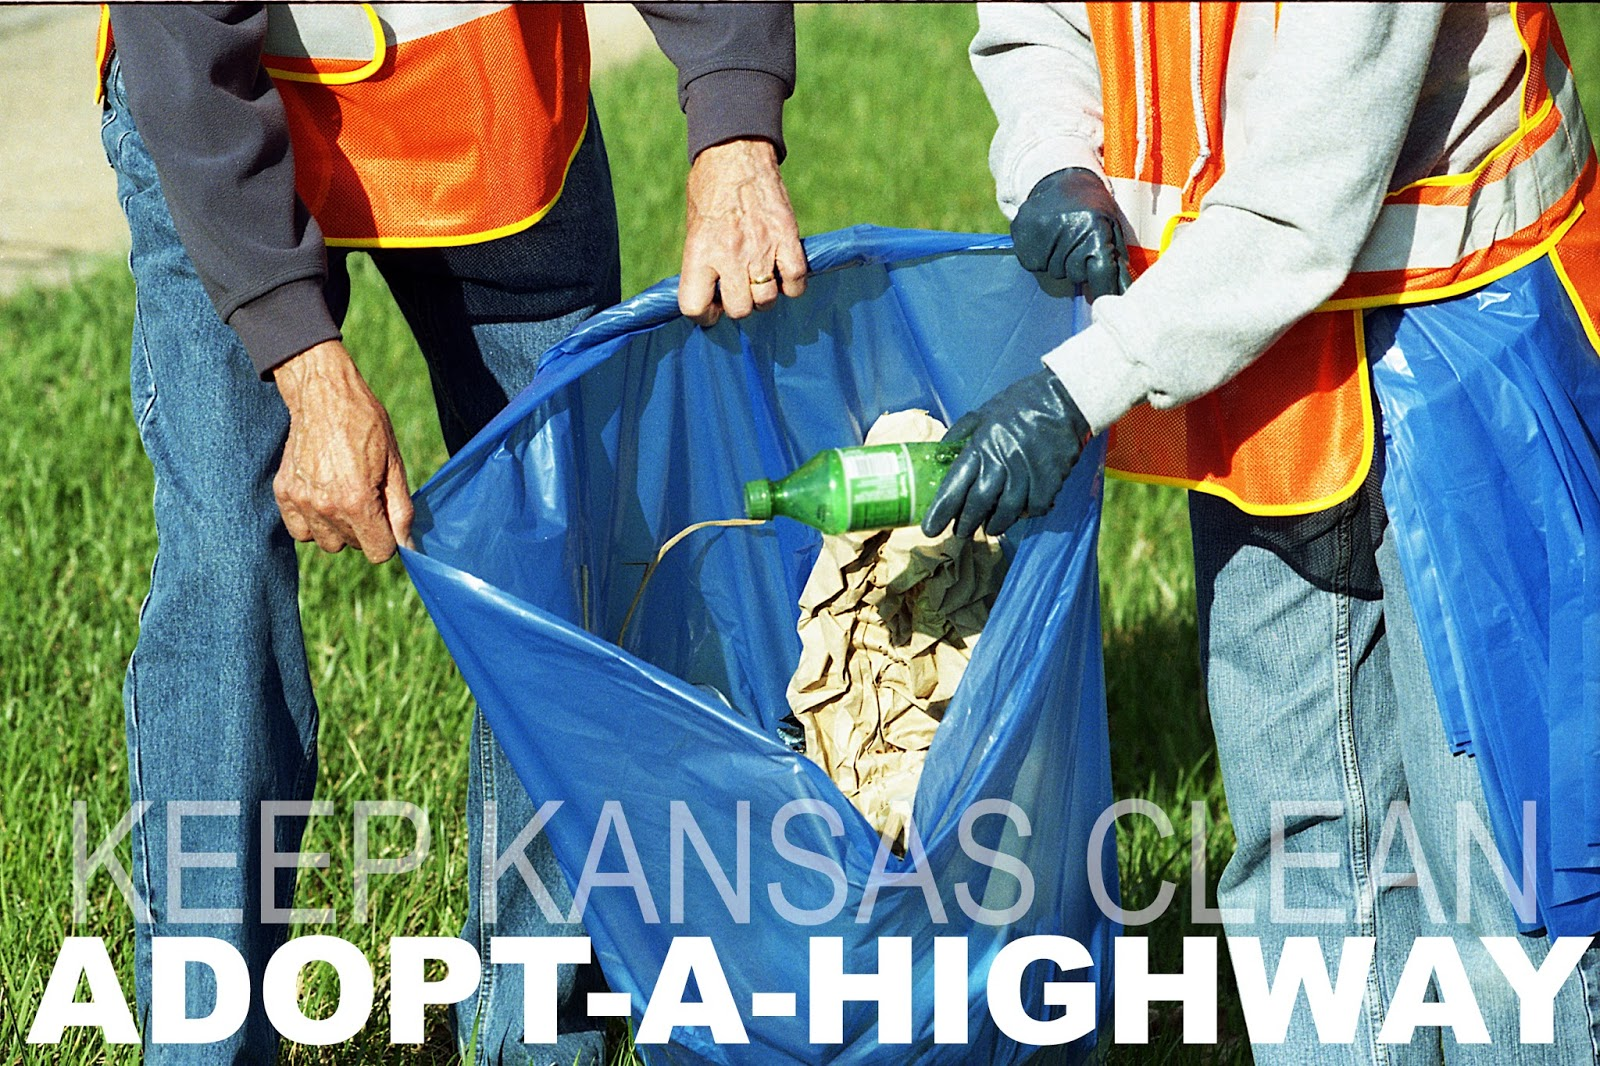 KDOT Says Make a difference – Adopt a highway